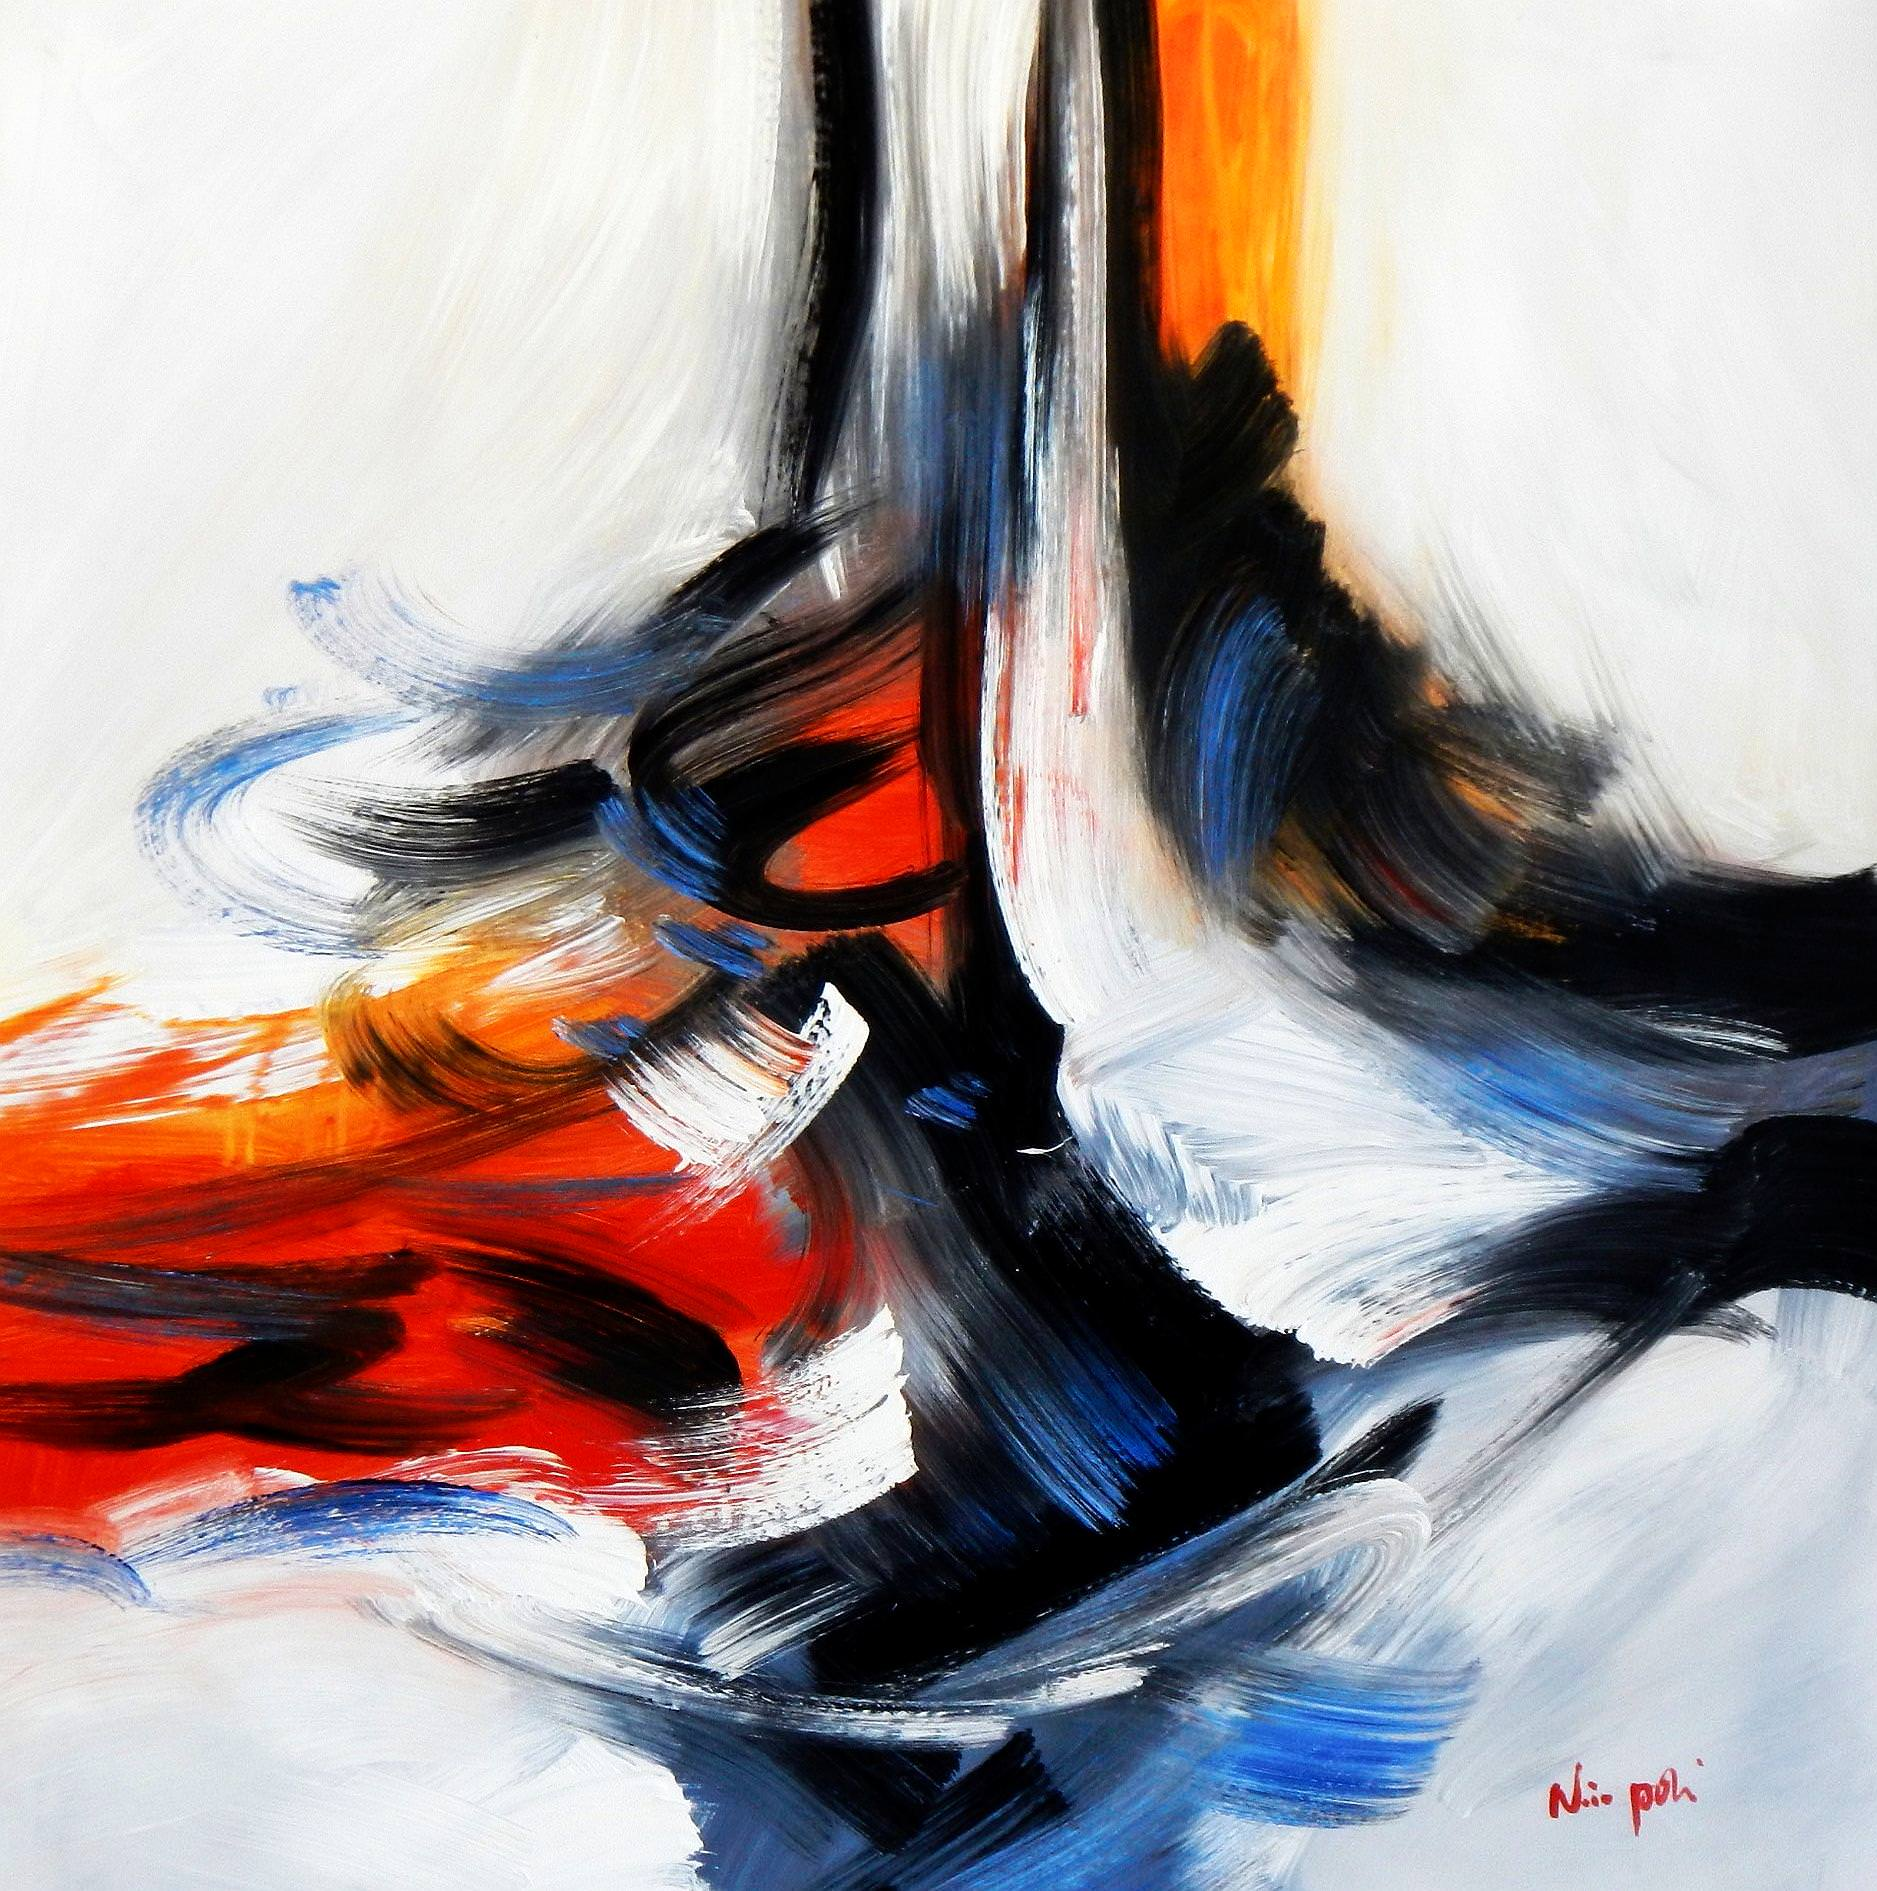 Abstract -  Tower of colors g93998 80x80cm abstraktes Ölbild handgemalt